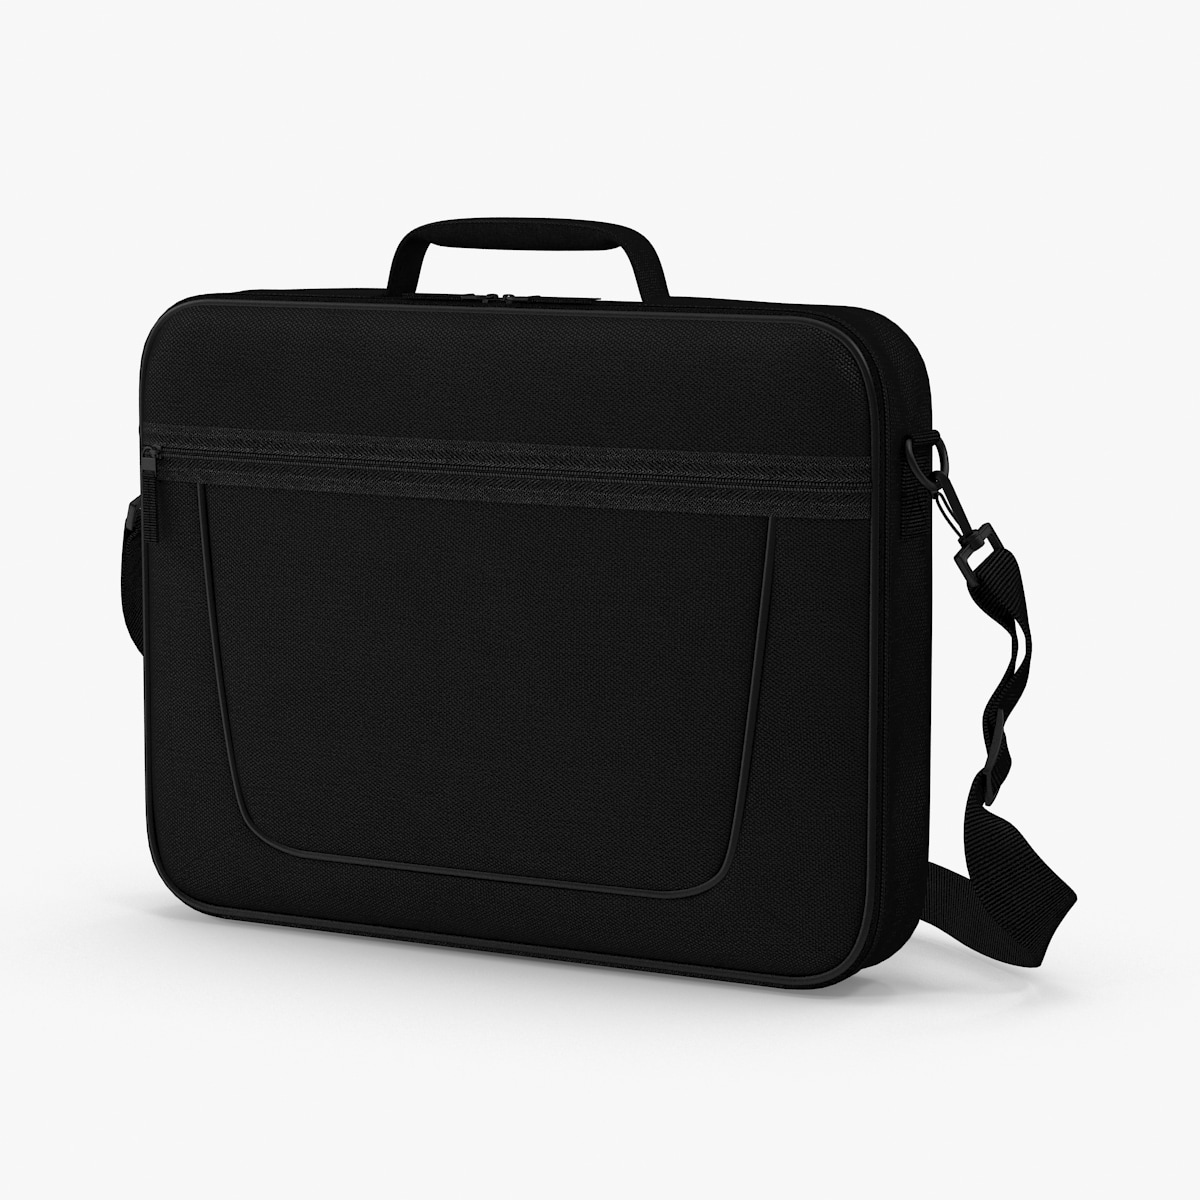 3d model laptop bag